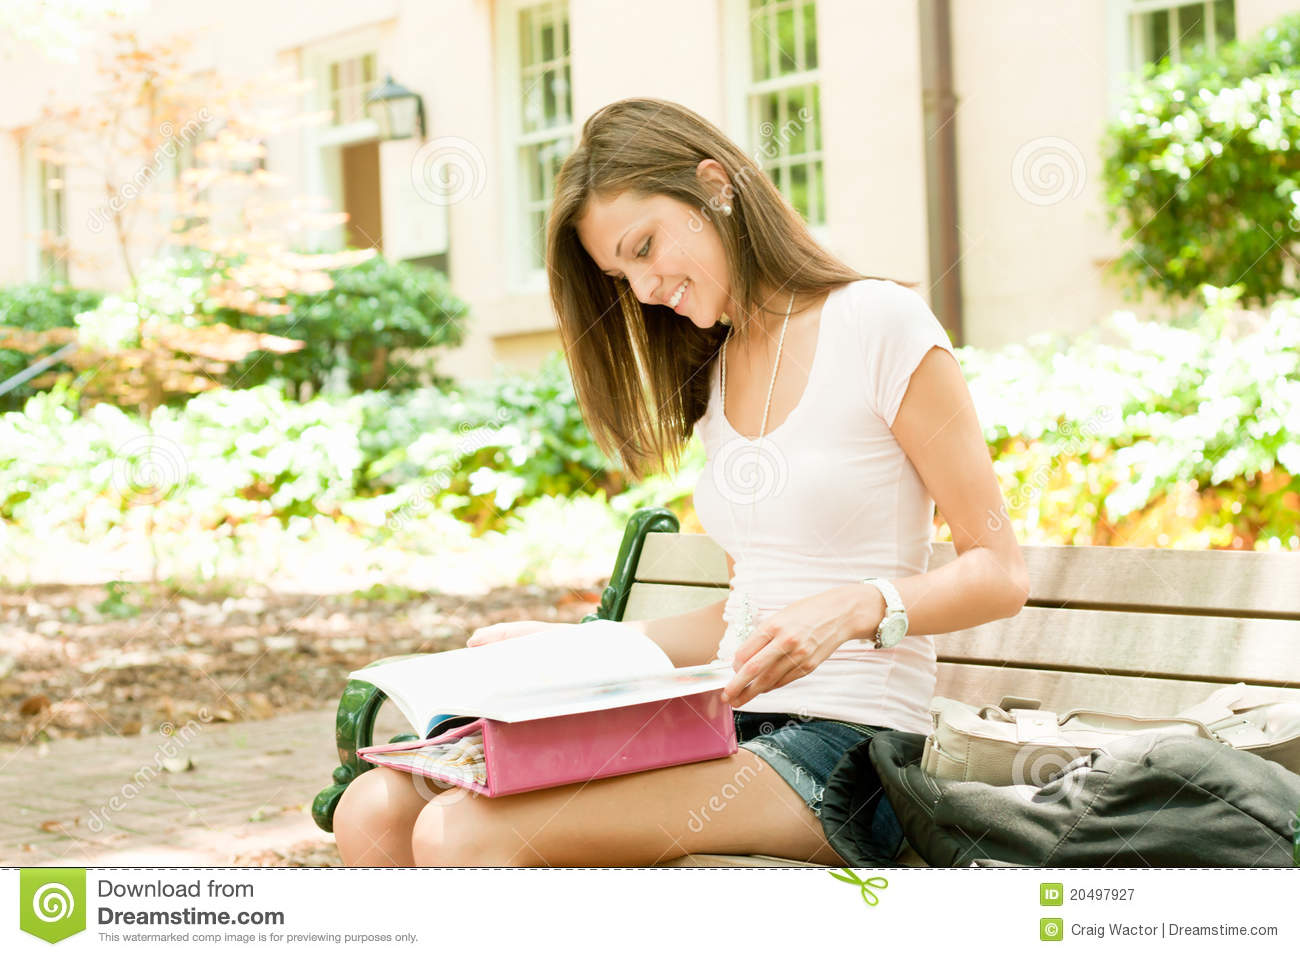 ... Young Student Royalty Free Stock Photography - Image: 20497927: www.dreamstime.com/royalty-free-stock-photography-attractive-young...